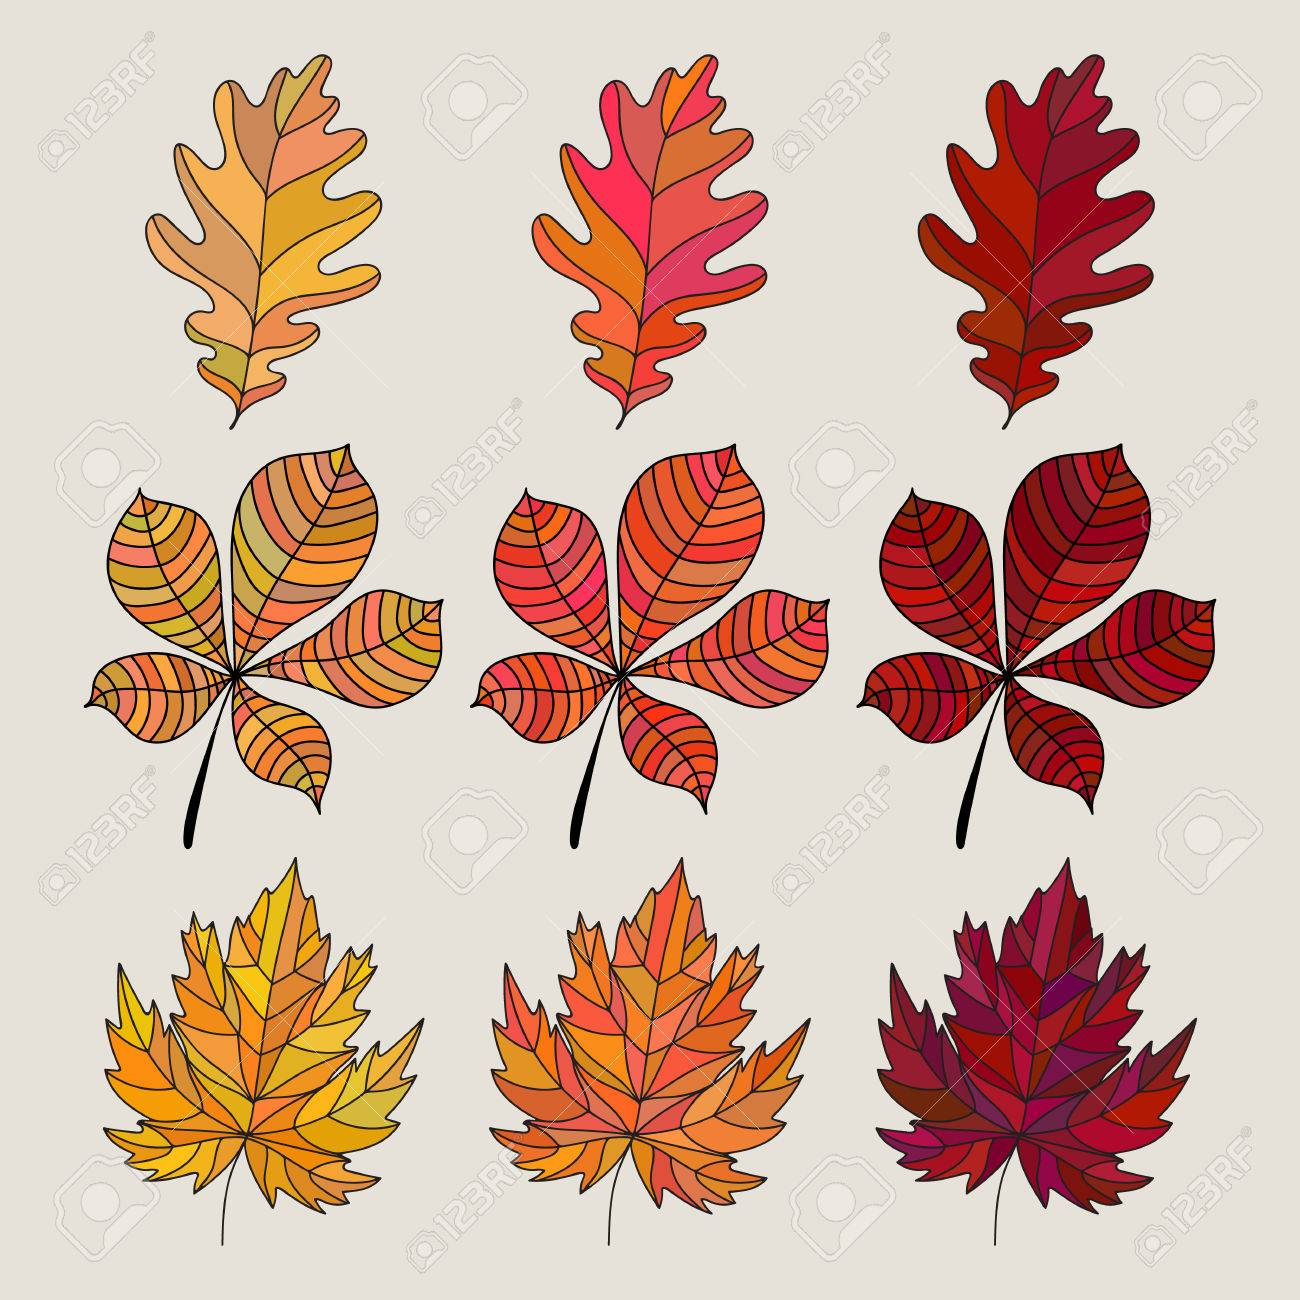 Set Of Colorful Autumn Leaves Vector Illustration Fall Leaves